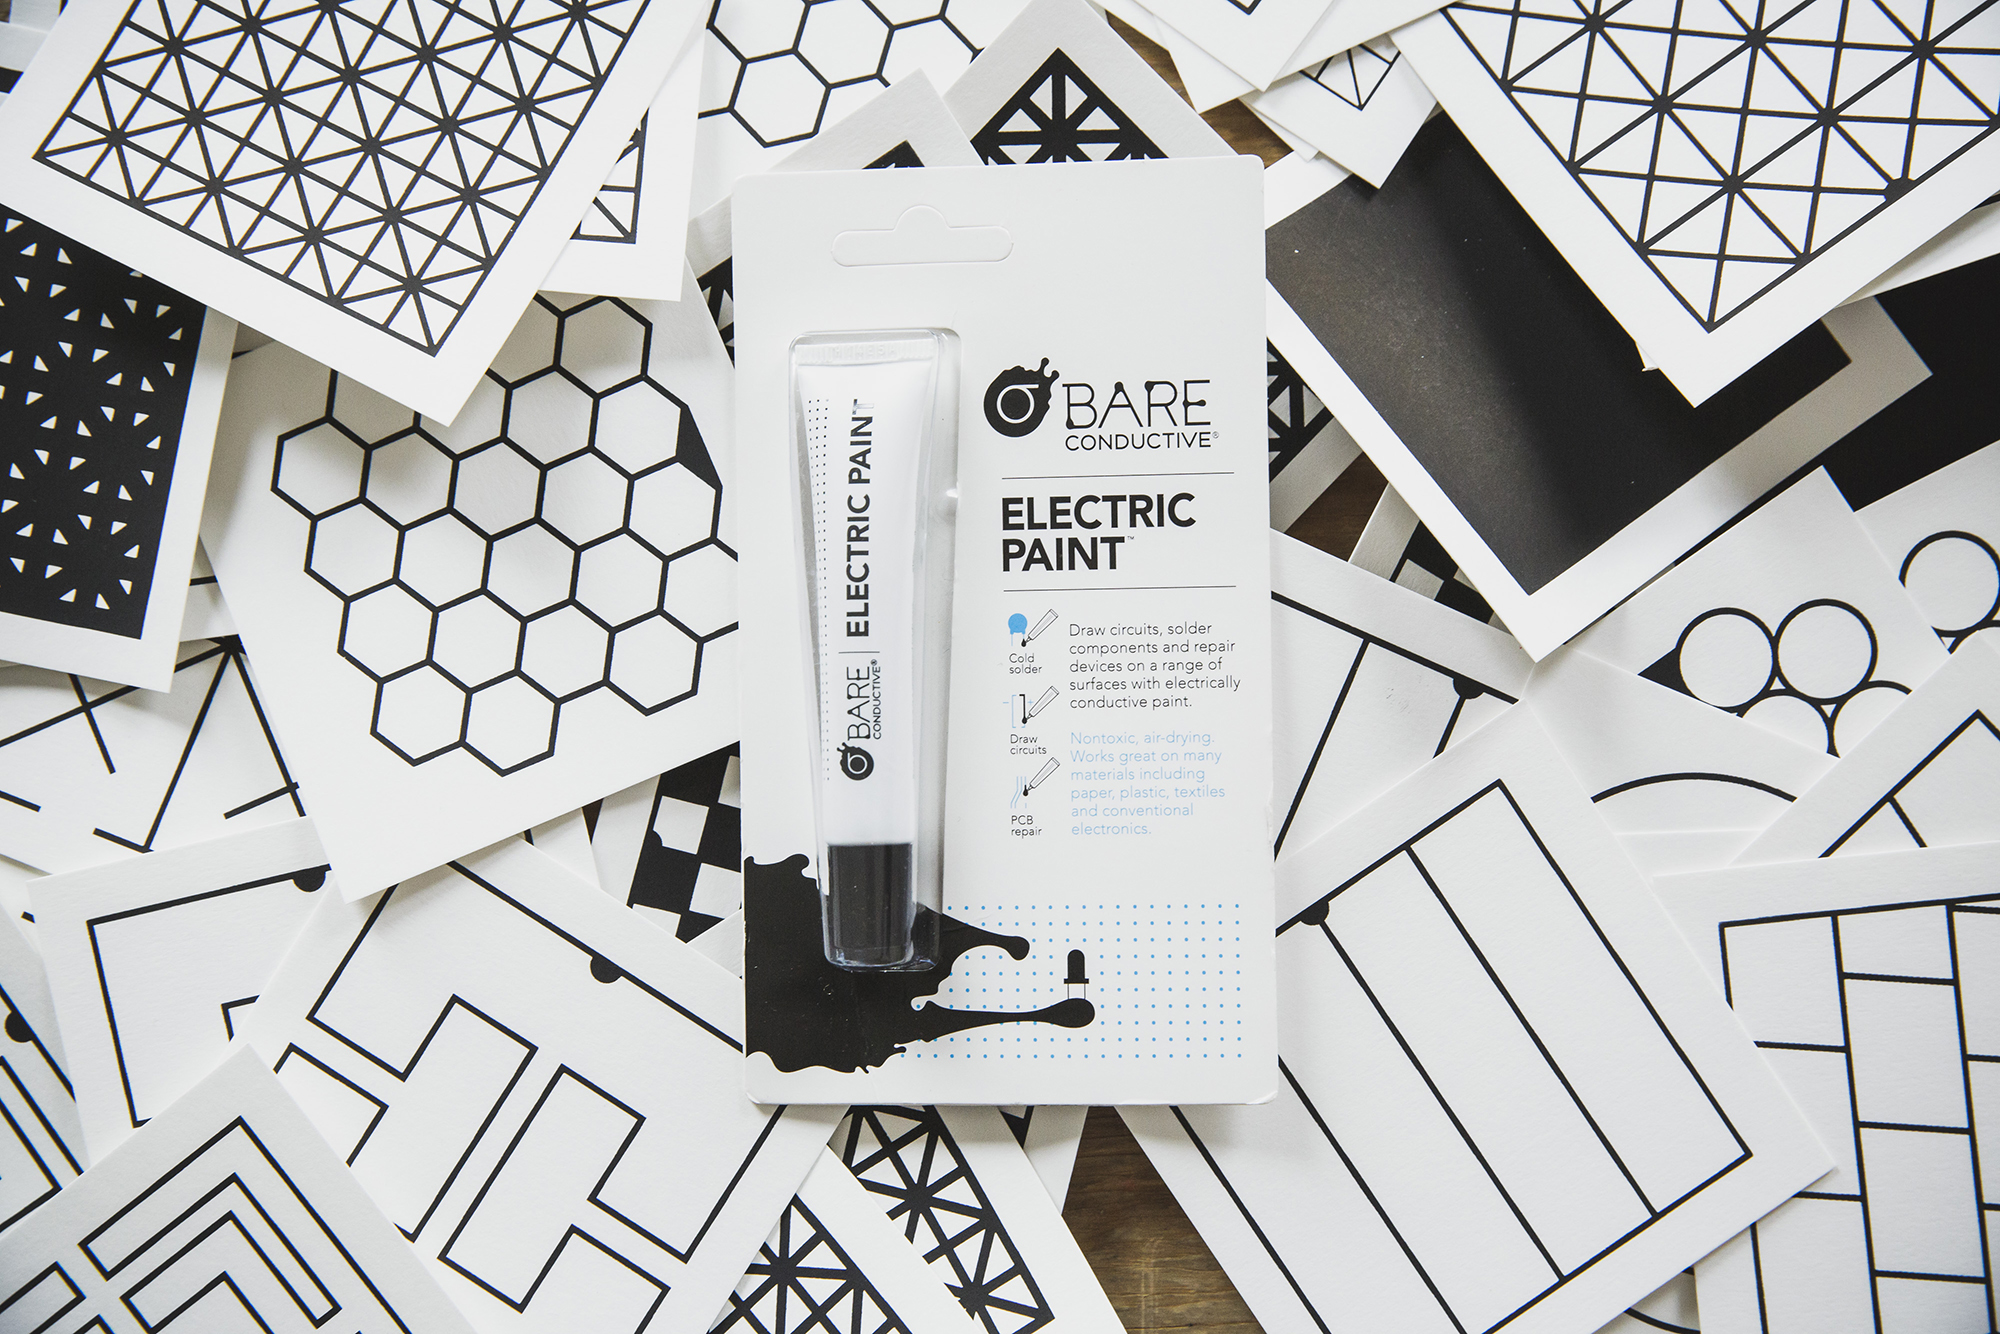 Bring sensors into your world with Bare Conductive's Electric Paint, Touch Board and Pi Cap!